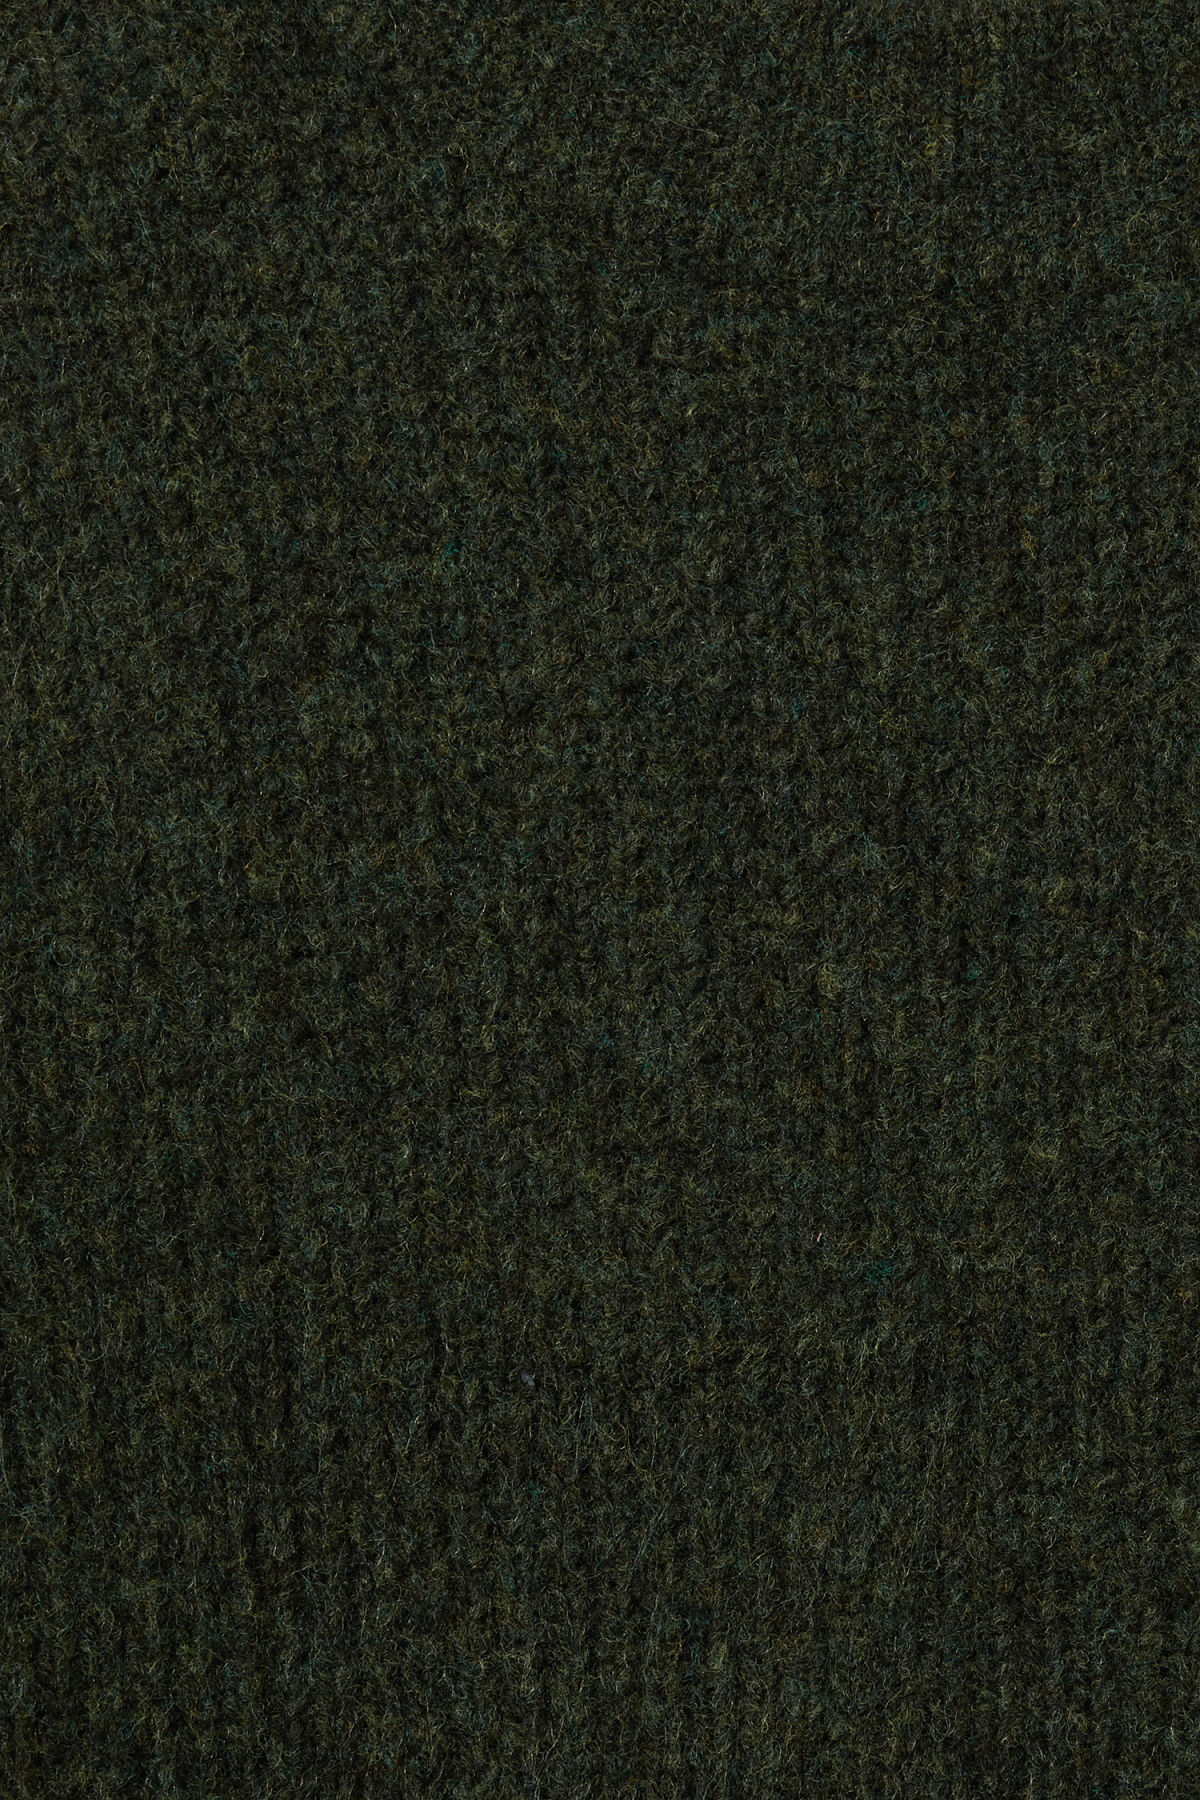 Detailed image of Weekday mino sweater in green